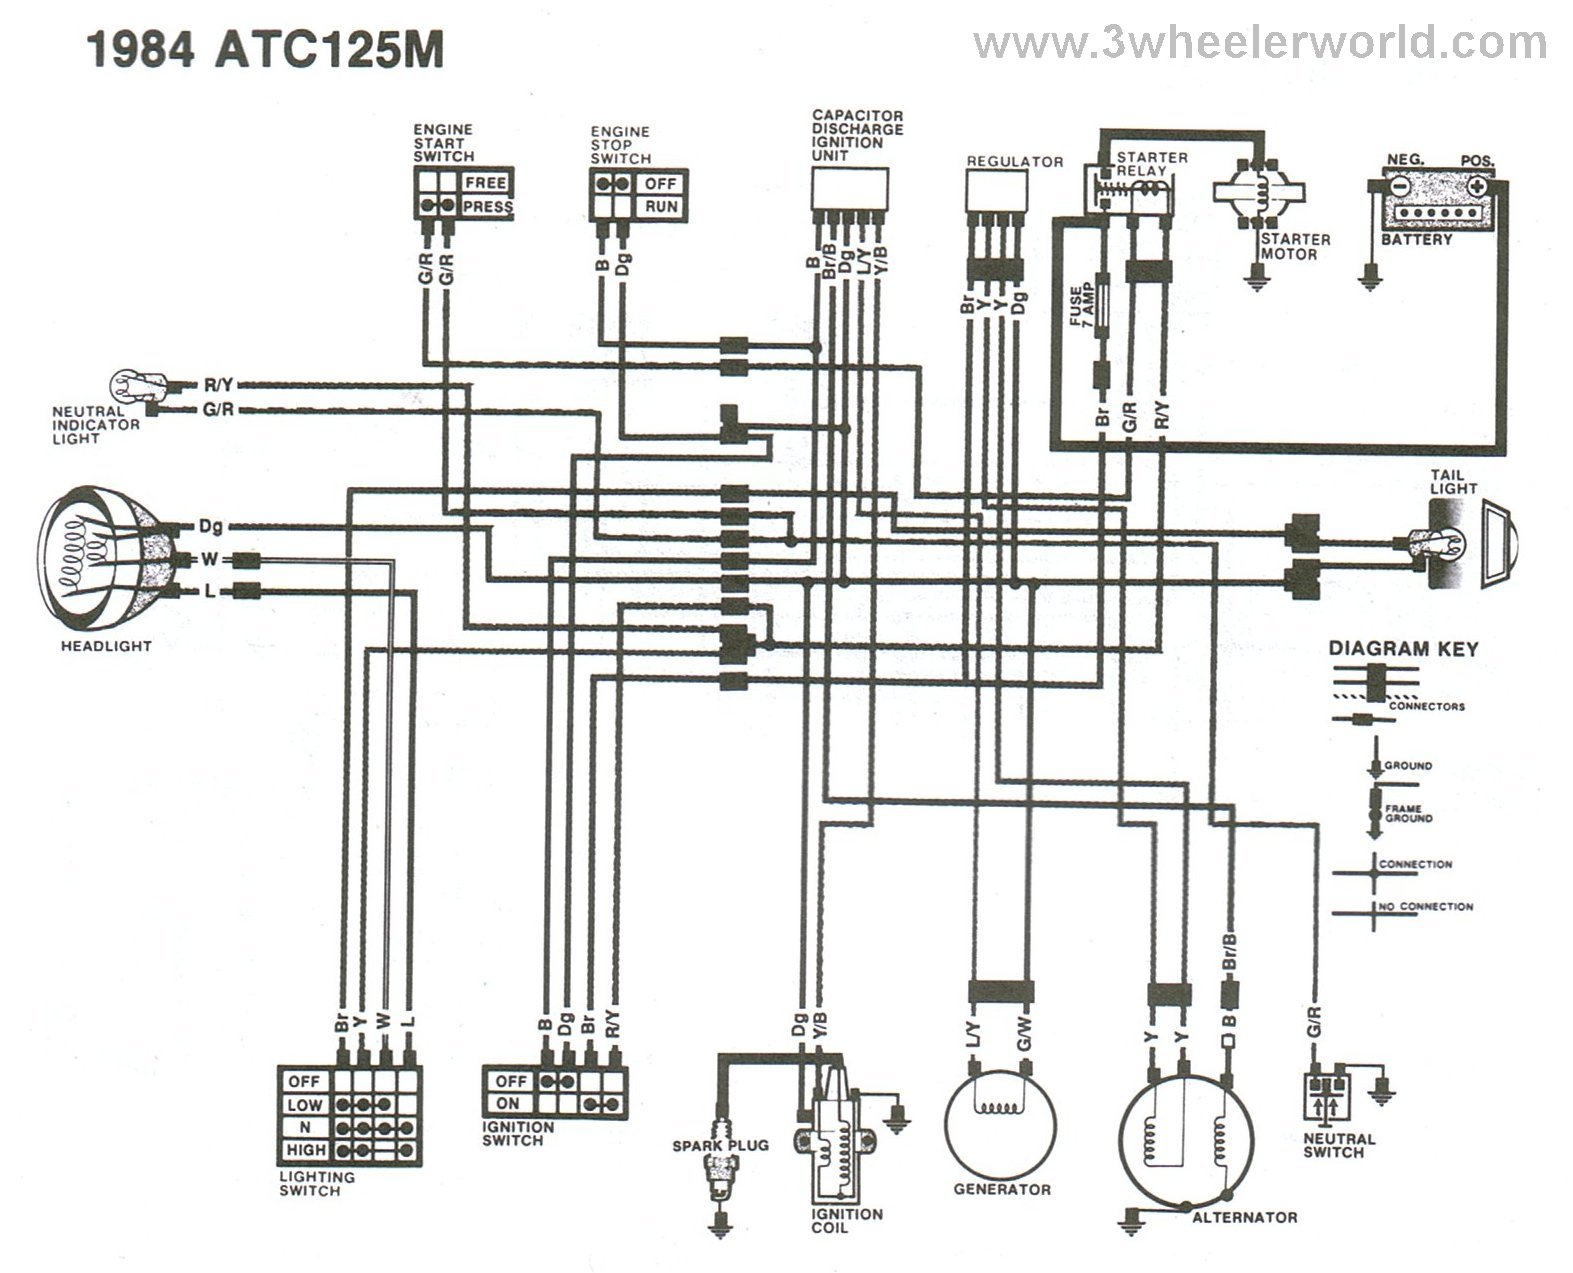 1986 Honda Fourtrax 350 Wiring Diagram Schematic Library Suzuki Samurai Engine Atc125m 1984